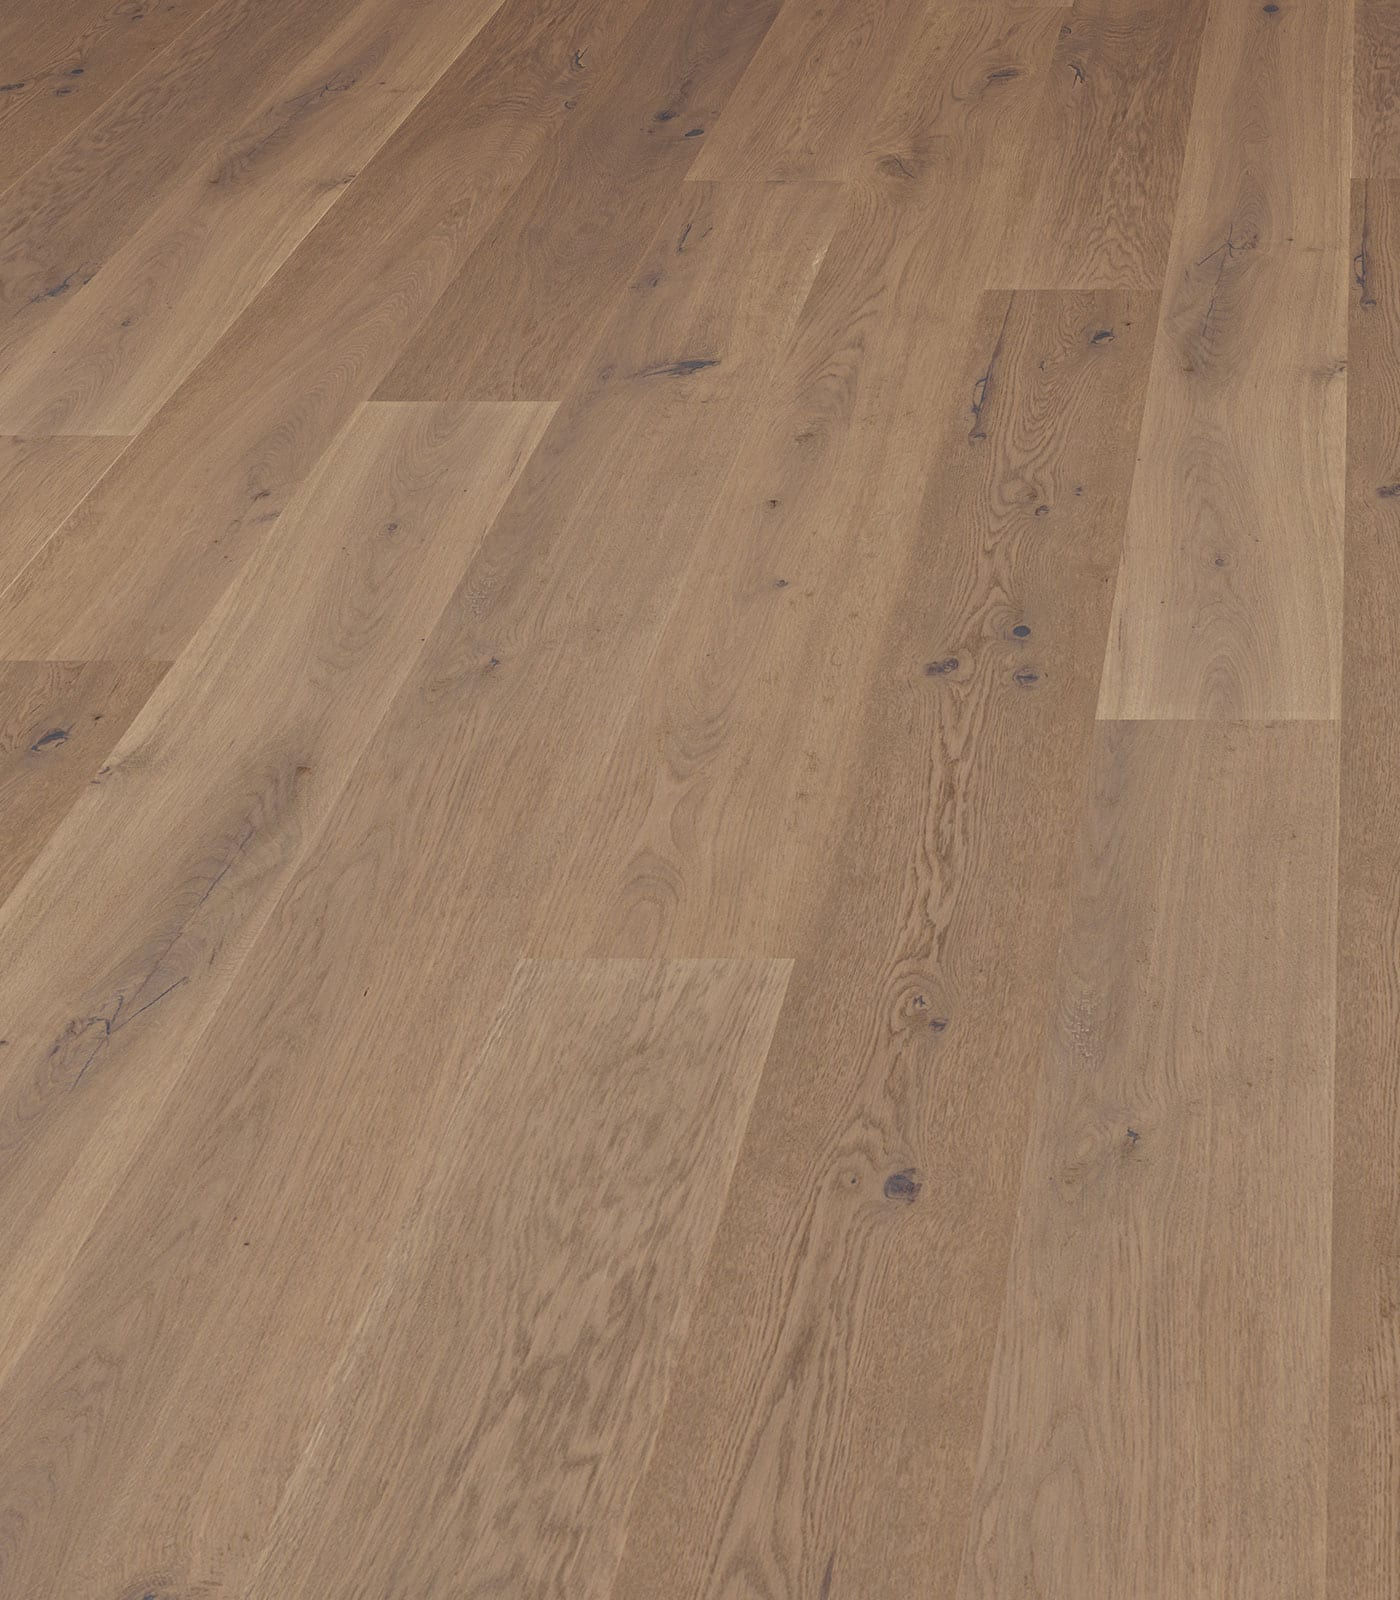 Apennines-Antique Collection-European Oak Floors-angle